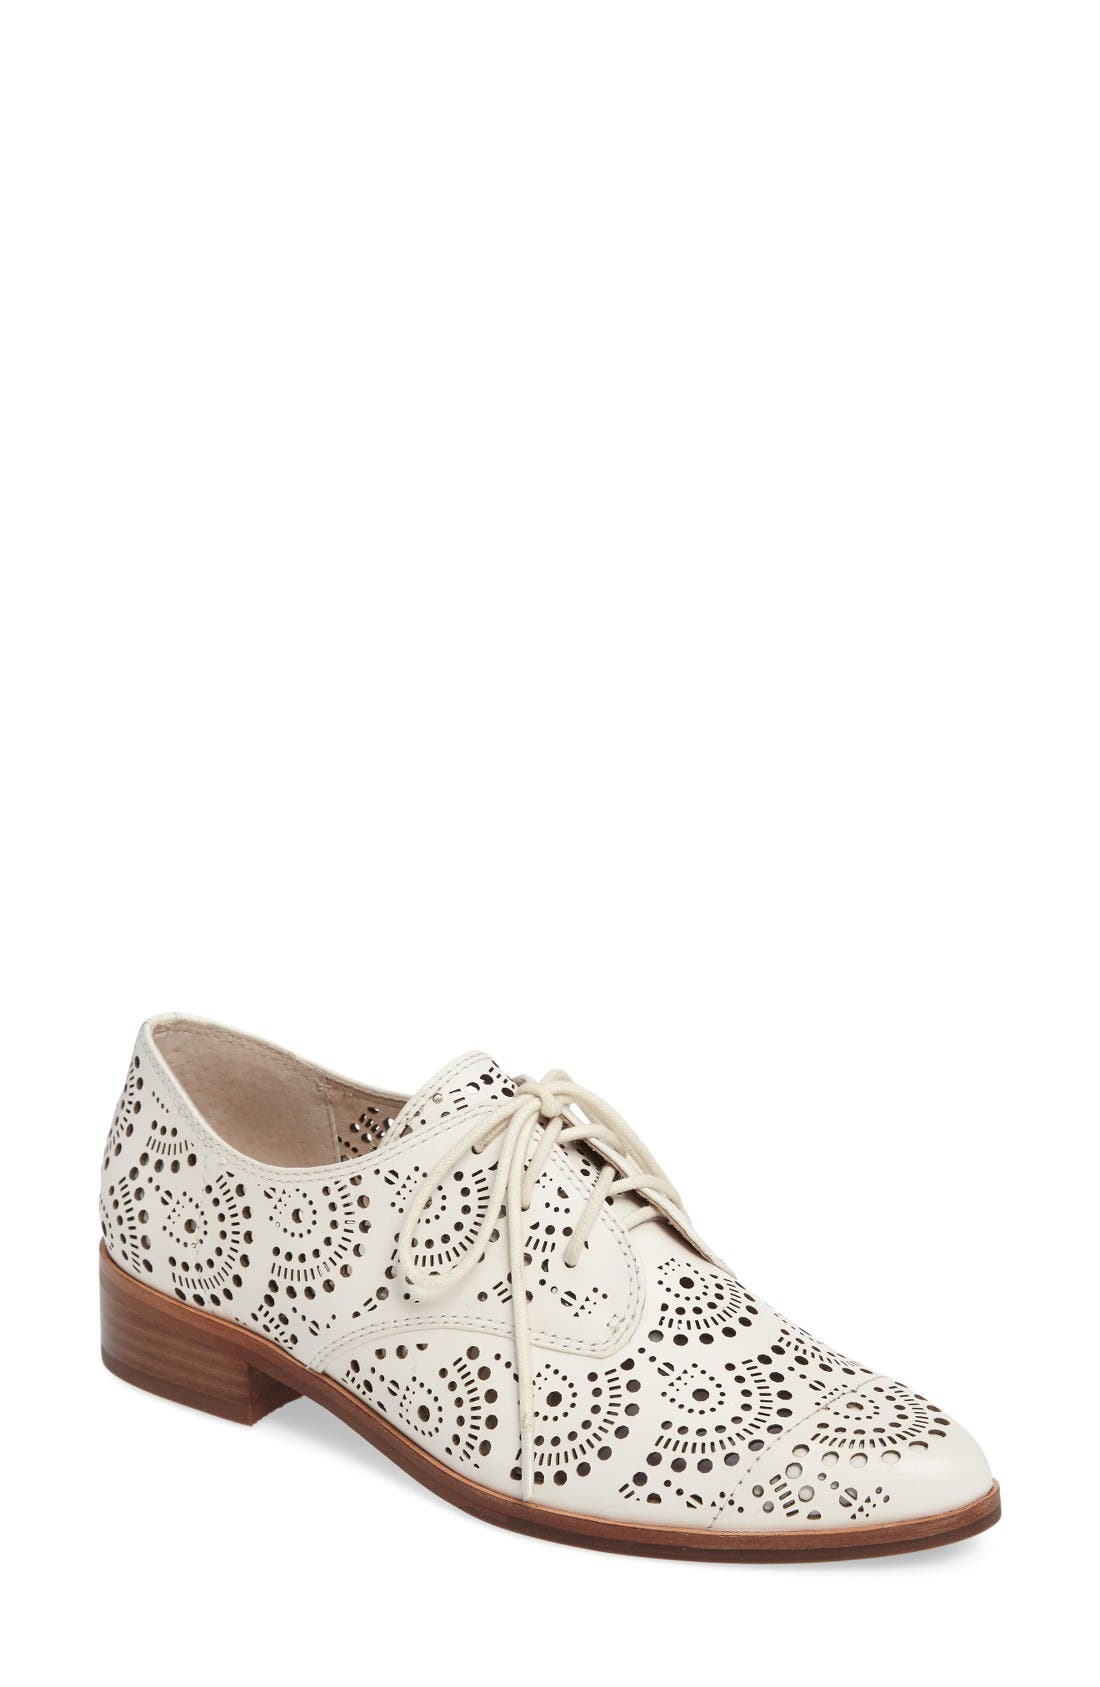 Alternate Image 1 Selected - Louise et Cie Annacis Perforated Oxford (Women)